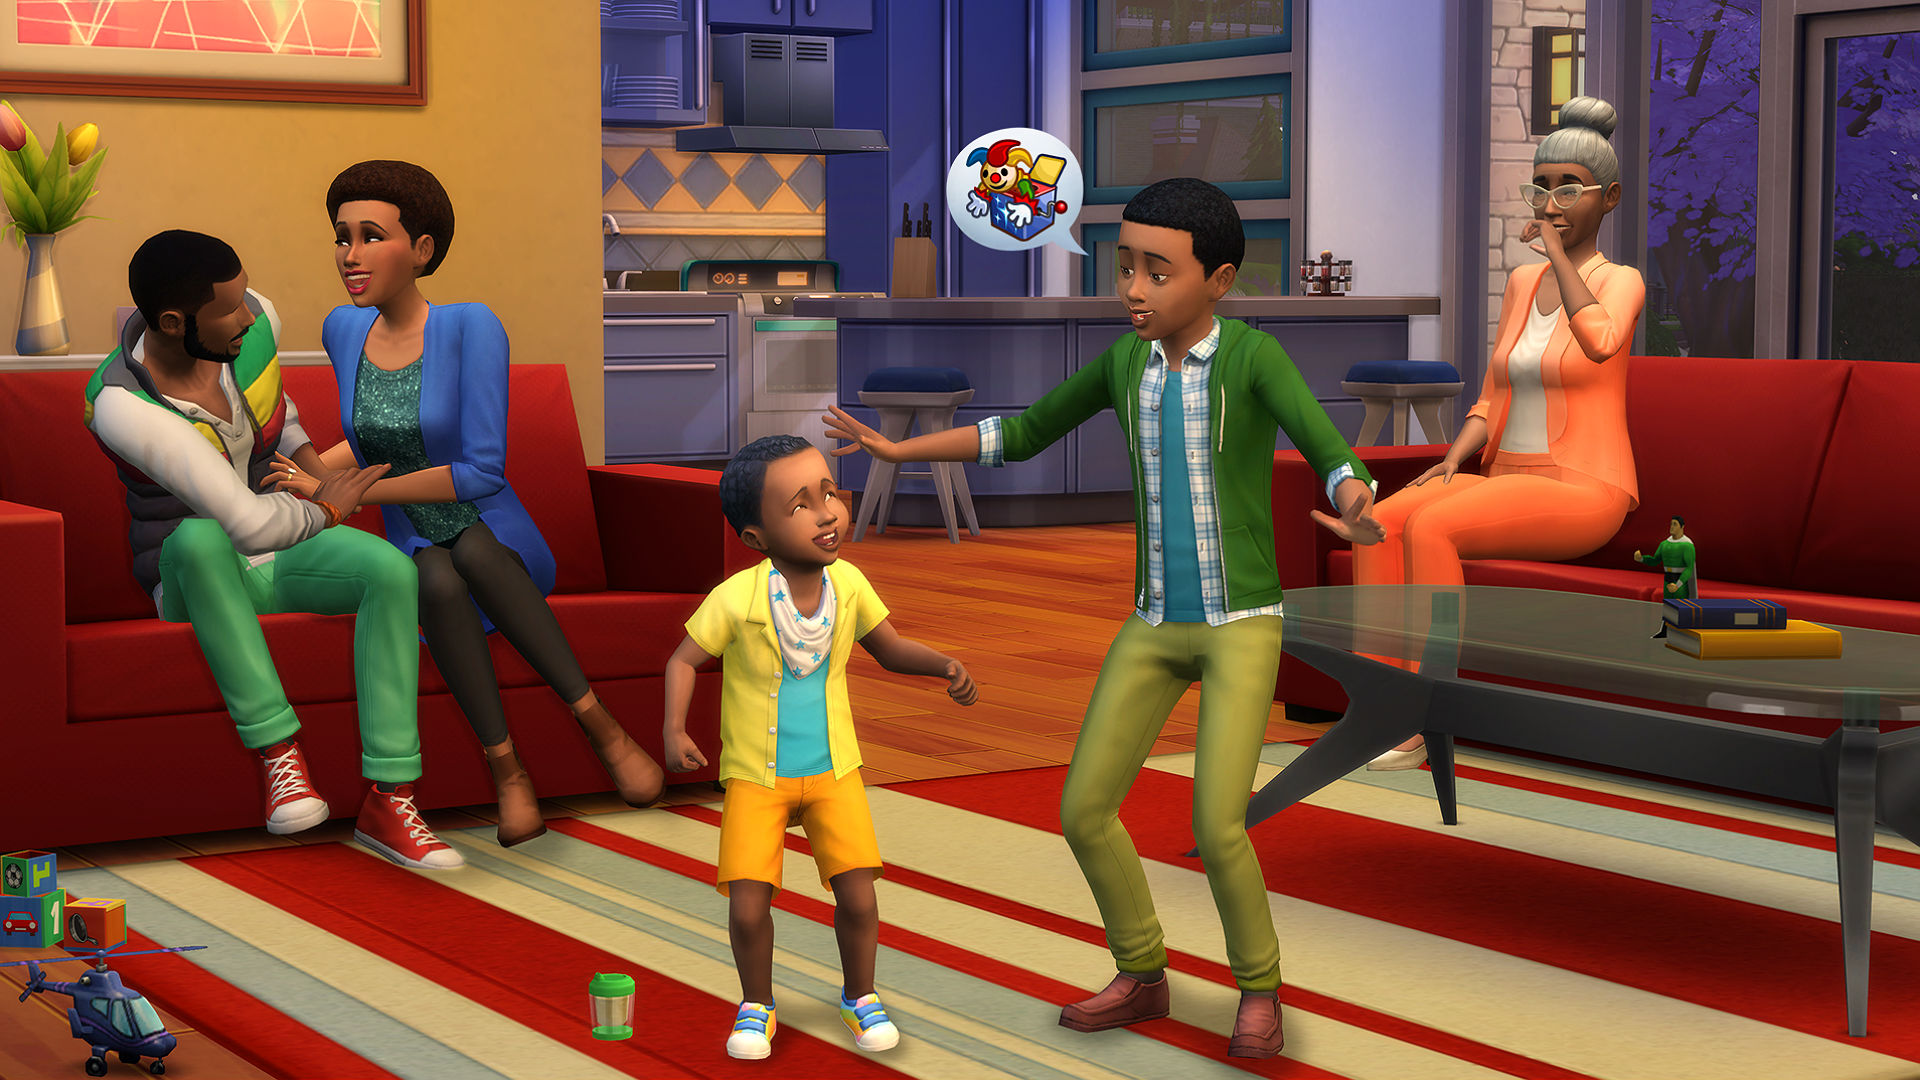 Sims 4 cheats: how to use cheats and get more money   PCGamesN